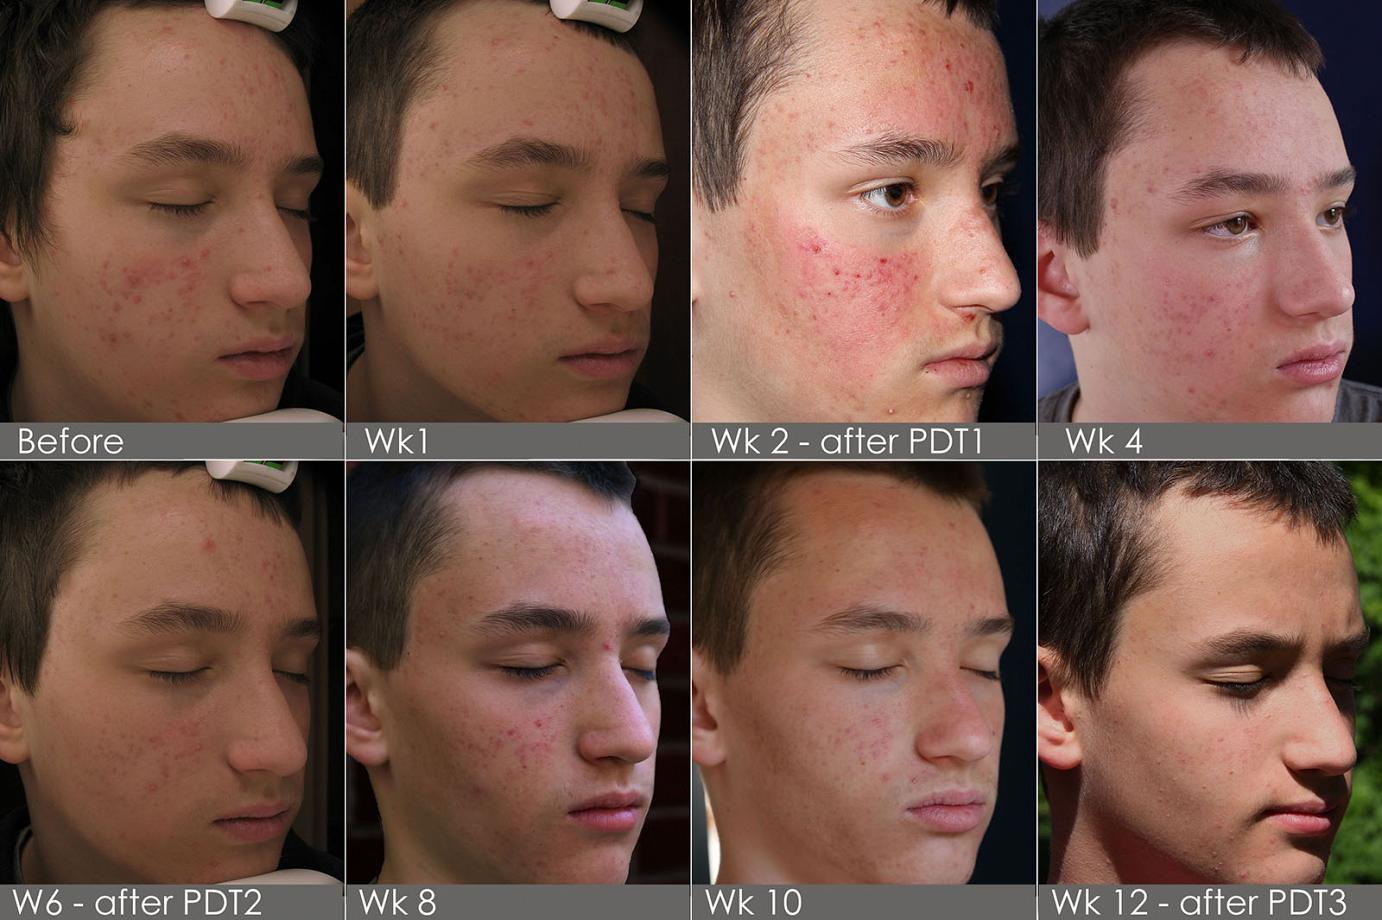 Teenage Acne Treatment In Philadelphia And Mainline Pa